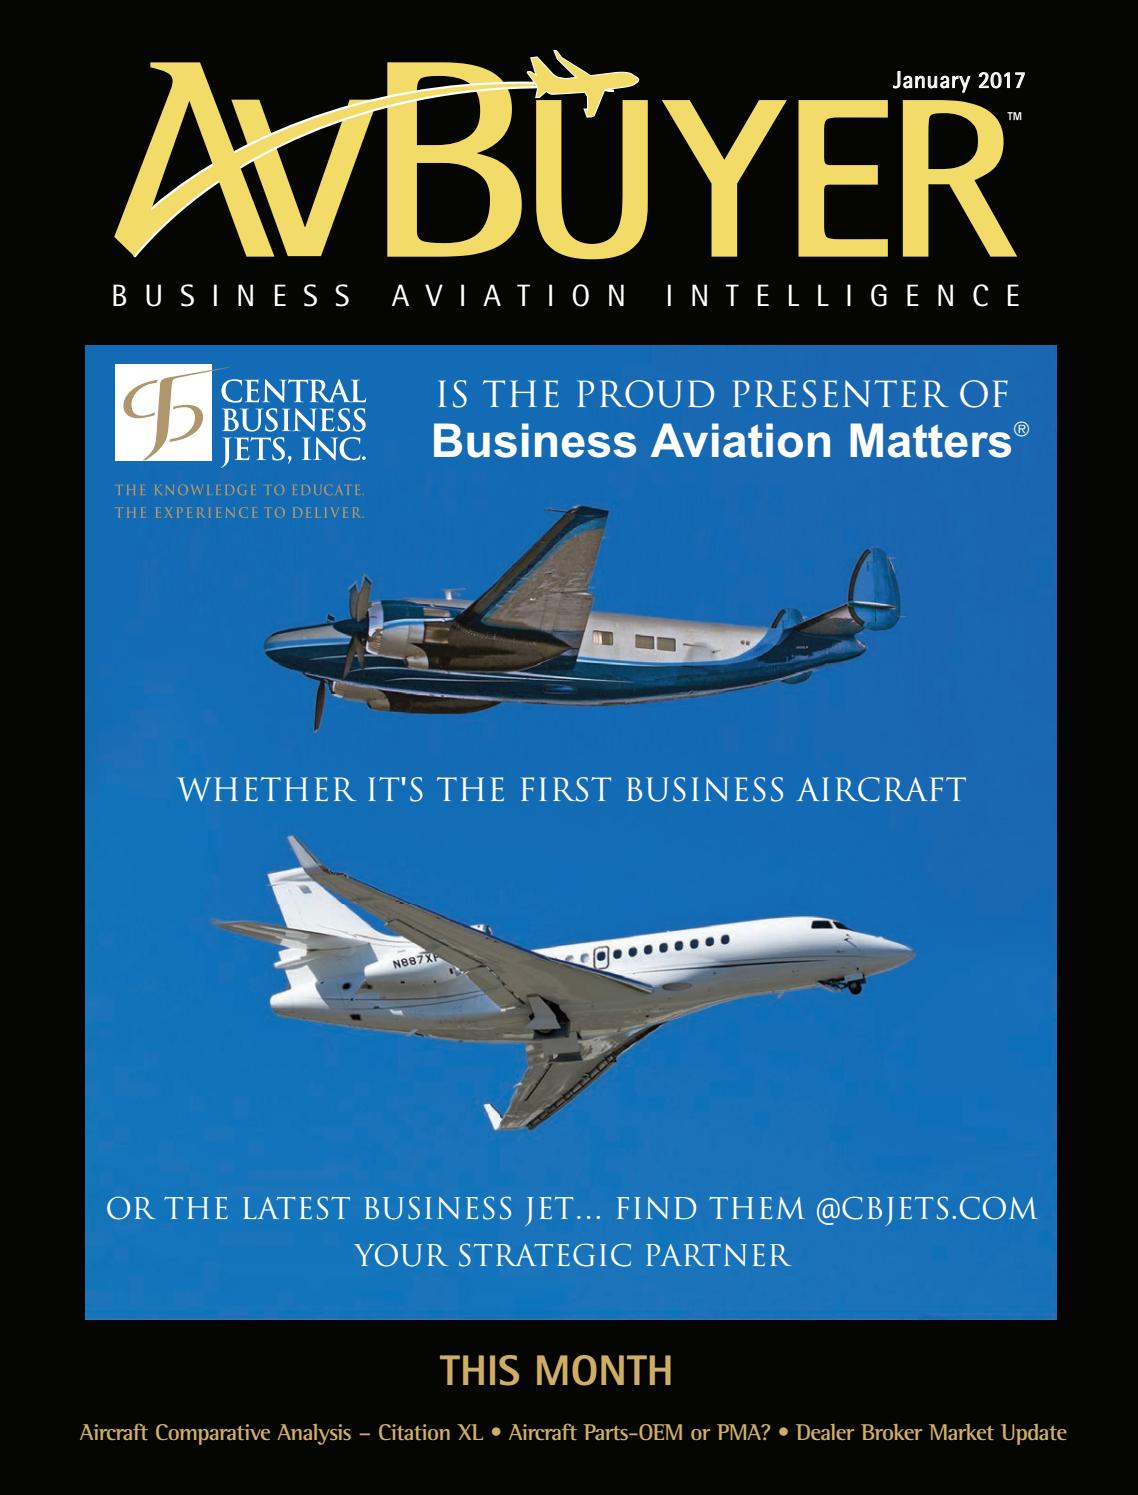 AvBuyer Magazine January 2017 by AvBuyer Ltd  - issuu